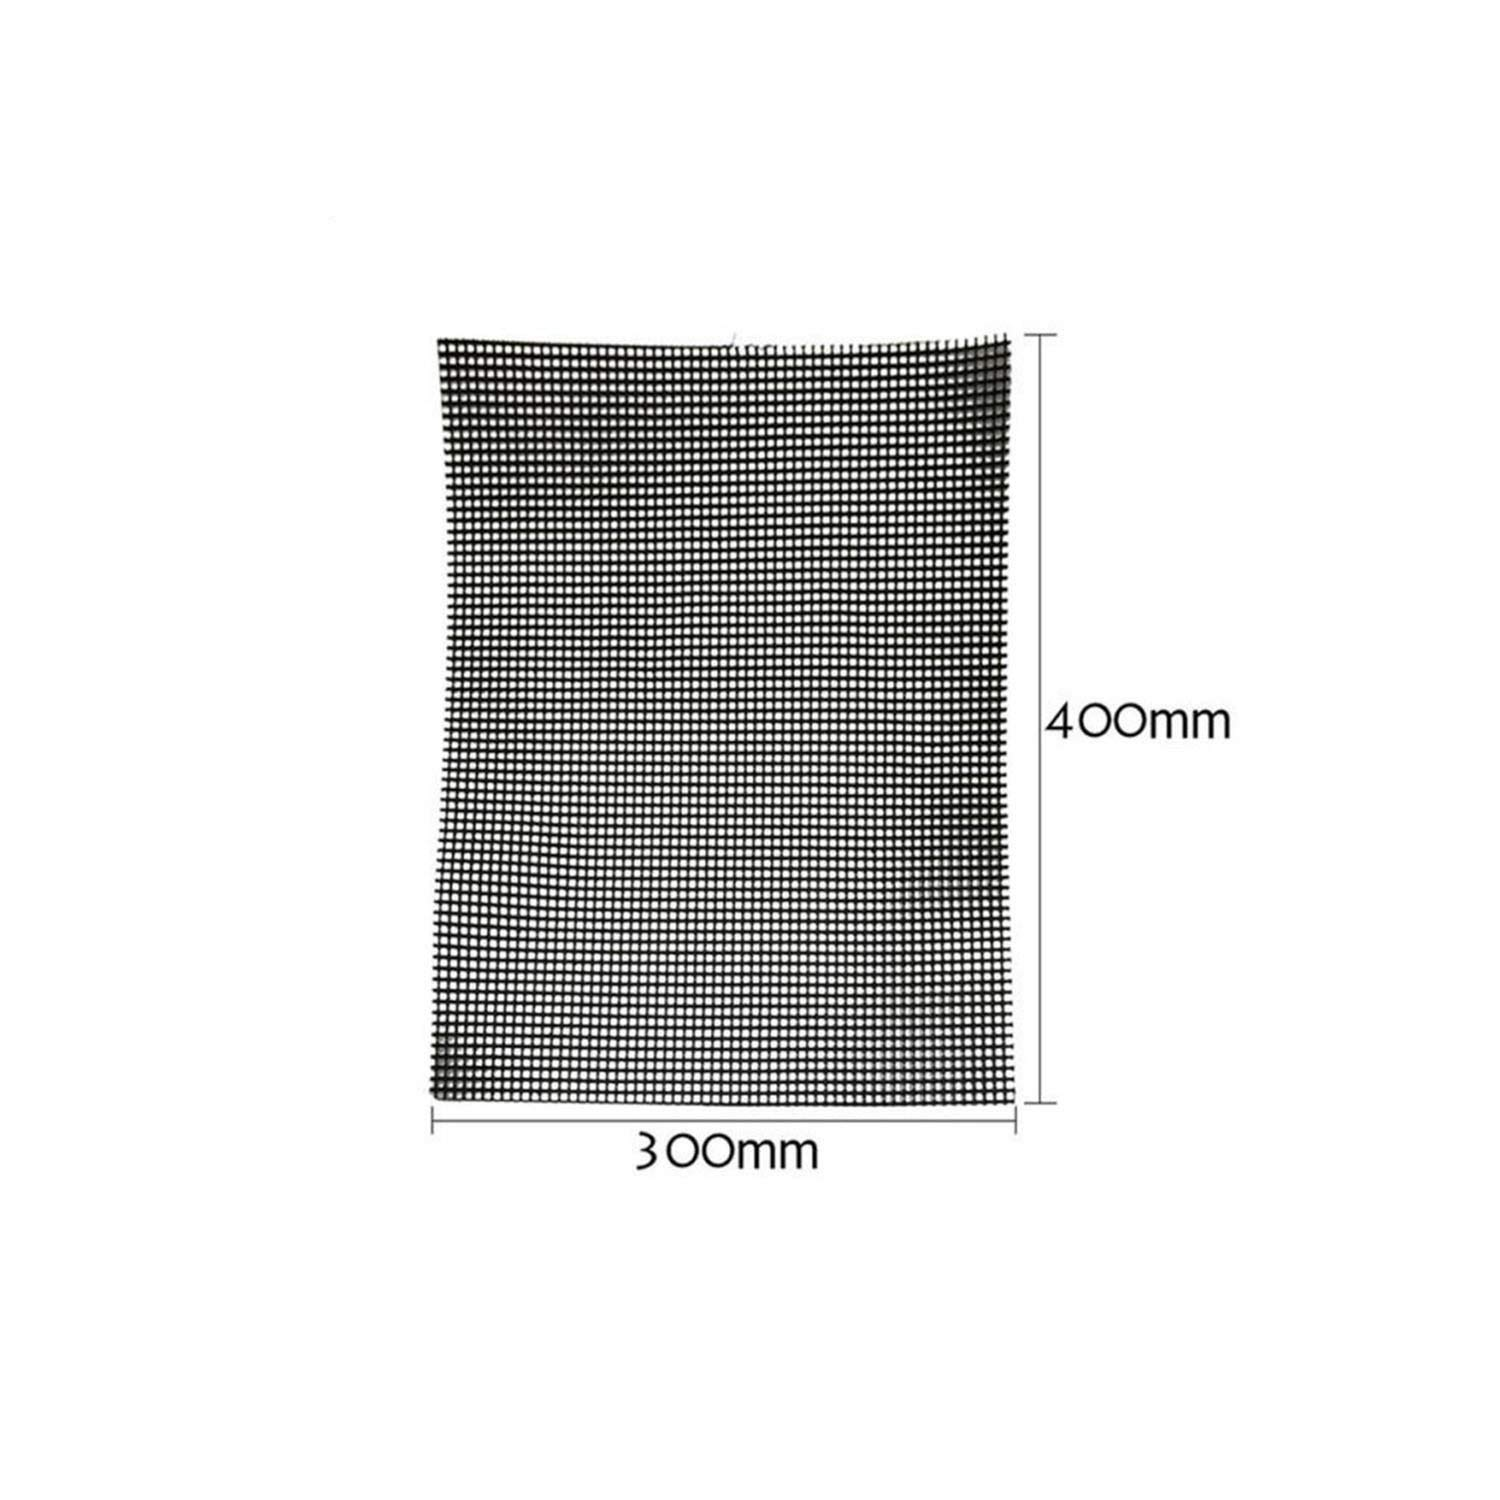 HuaHua-Store Metal Squares Holes Grill Mesh BBQ Barbecue Tool Nonstick Stainless Steel Grilling Wire Mesh Oven,M